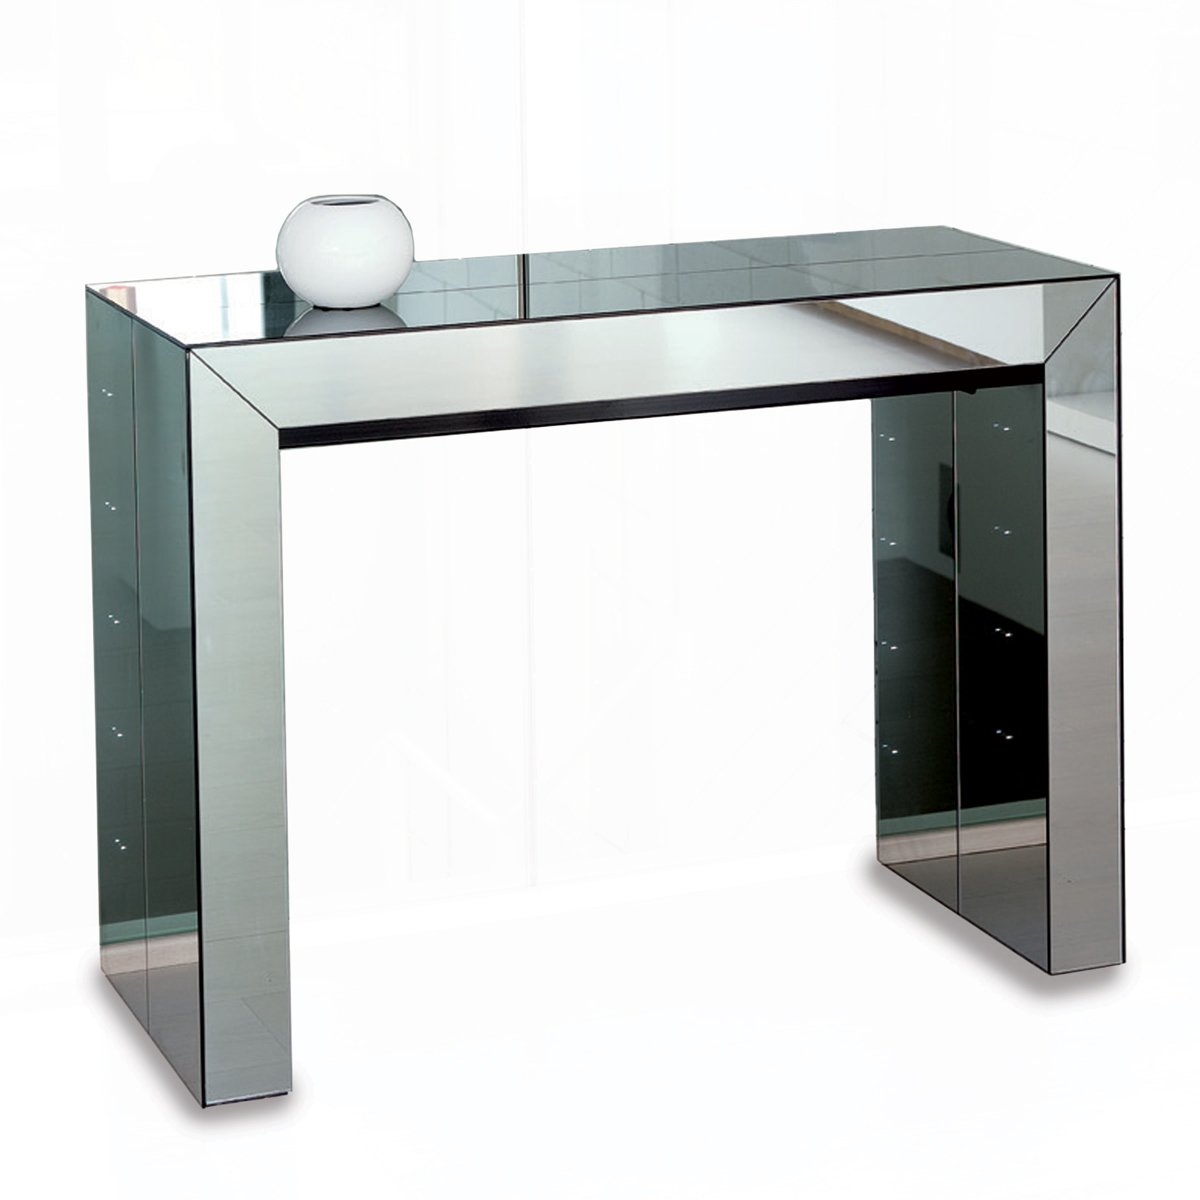 Table console miroir meubles et atmosph re for Miroir et console